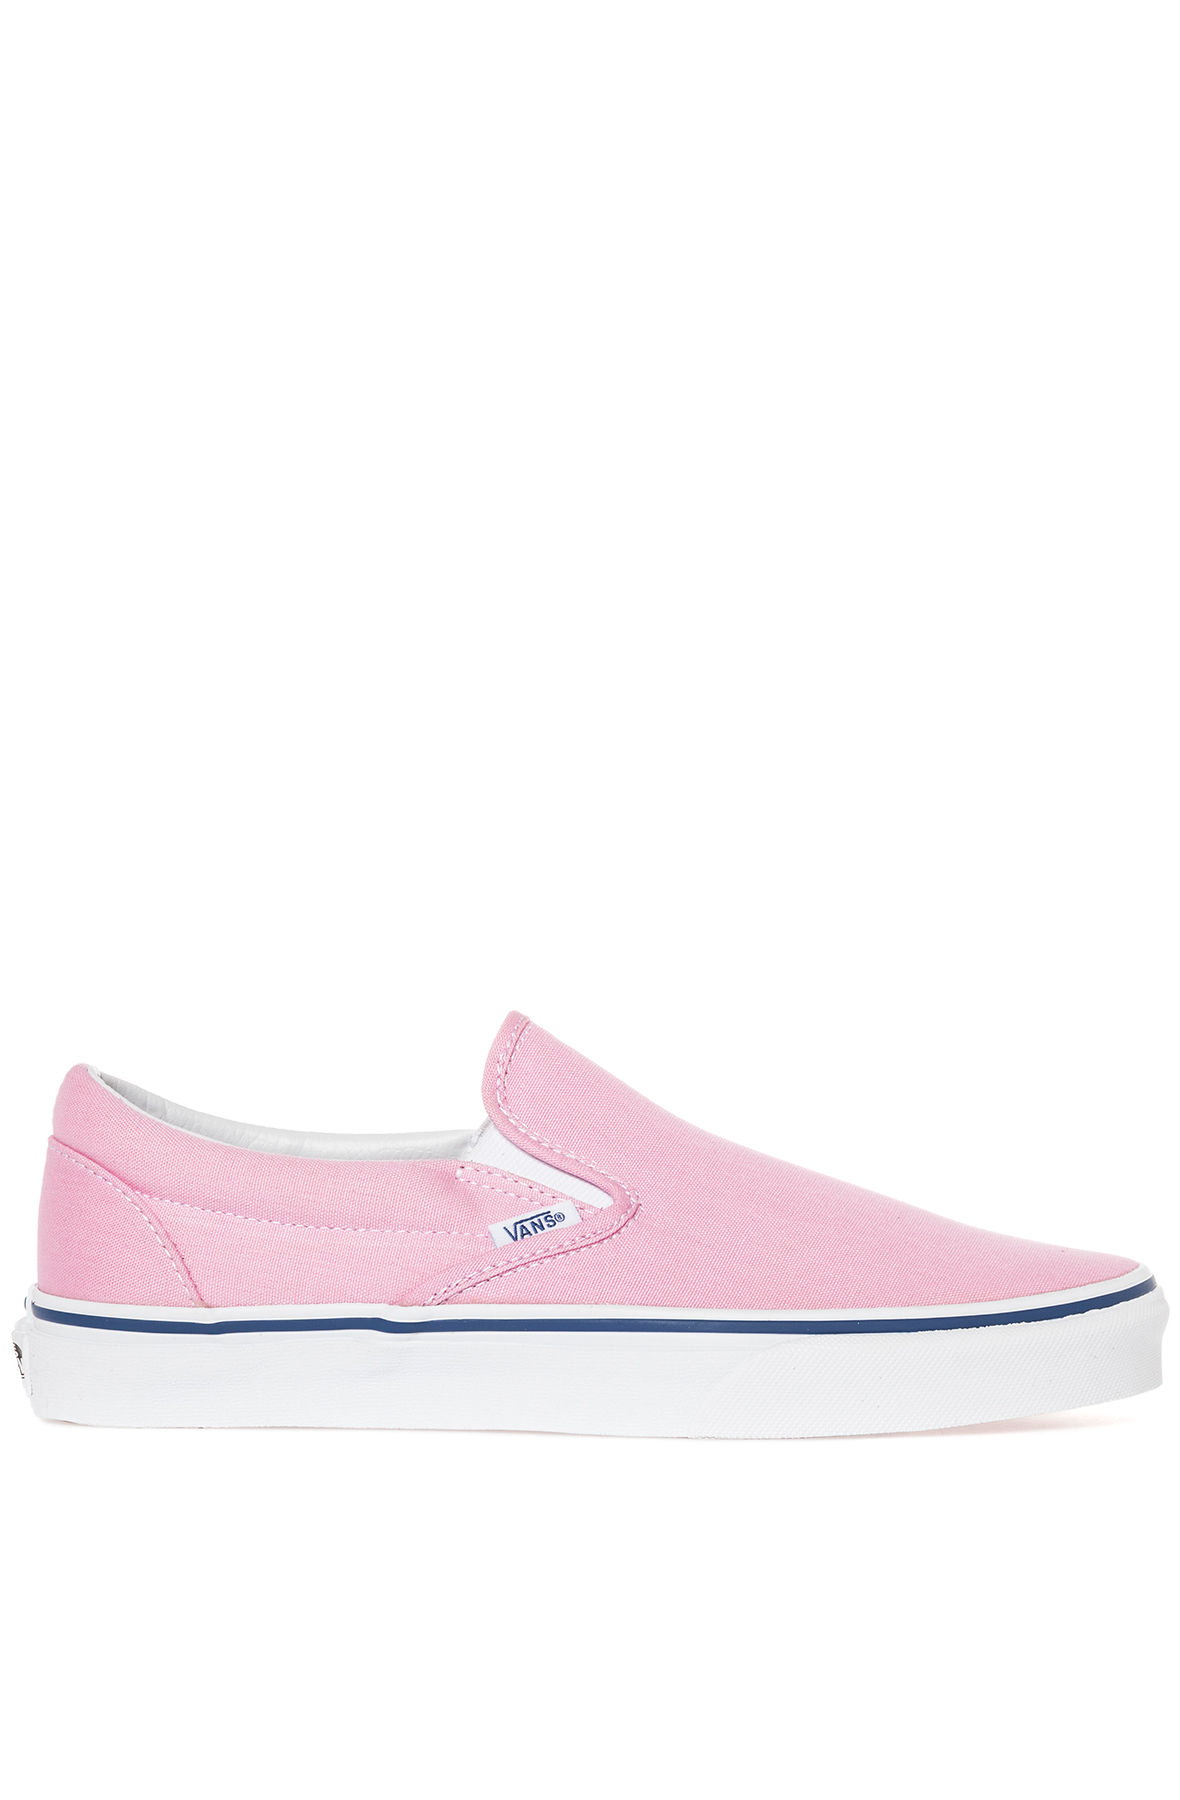 bd4e60ad1600 Lyst - Vans The Classic Slip-On Prism Pink   True White in Pink